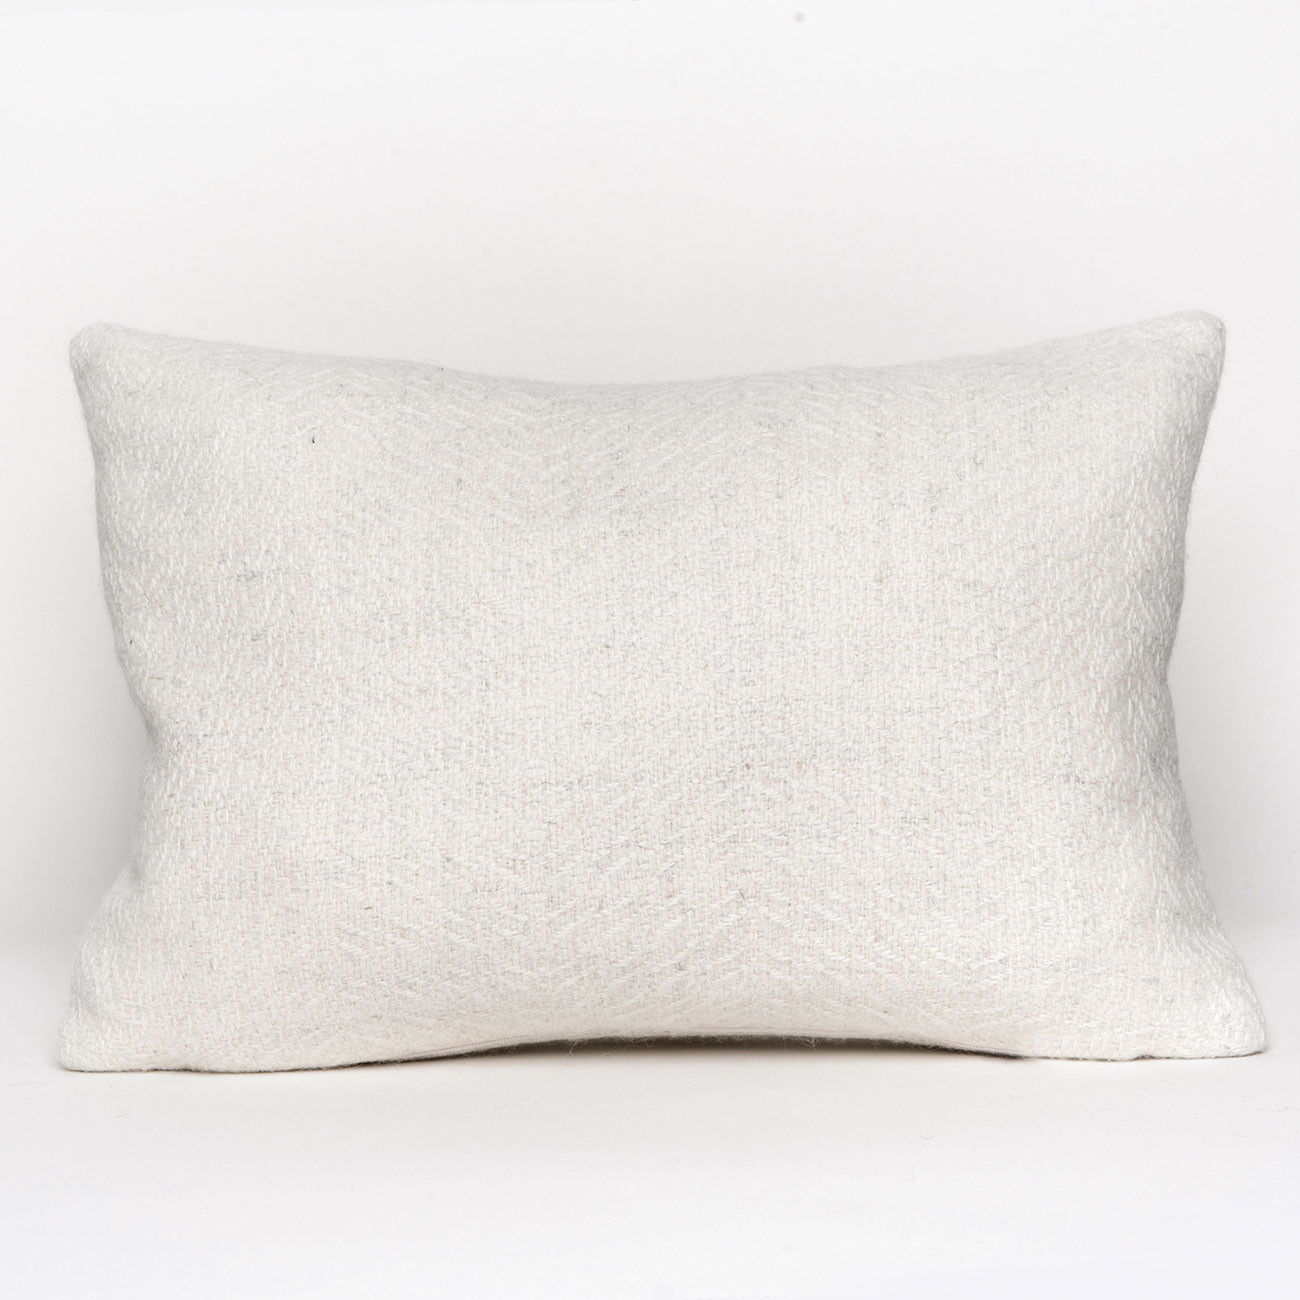 Herringbone Oblong Cushion - Natural White Alpaca - 0